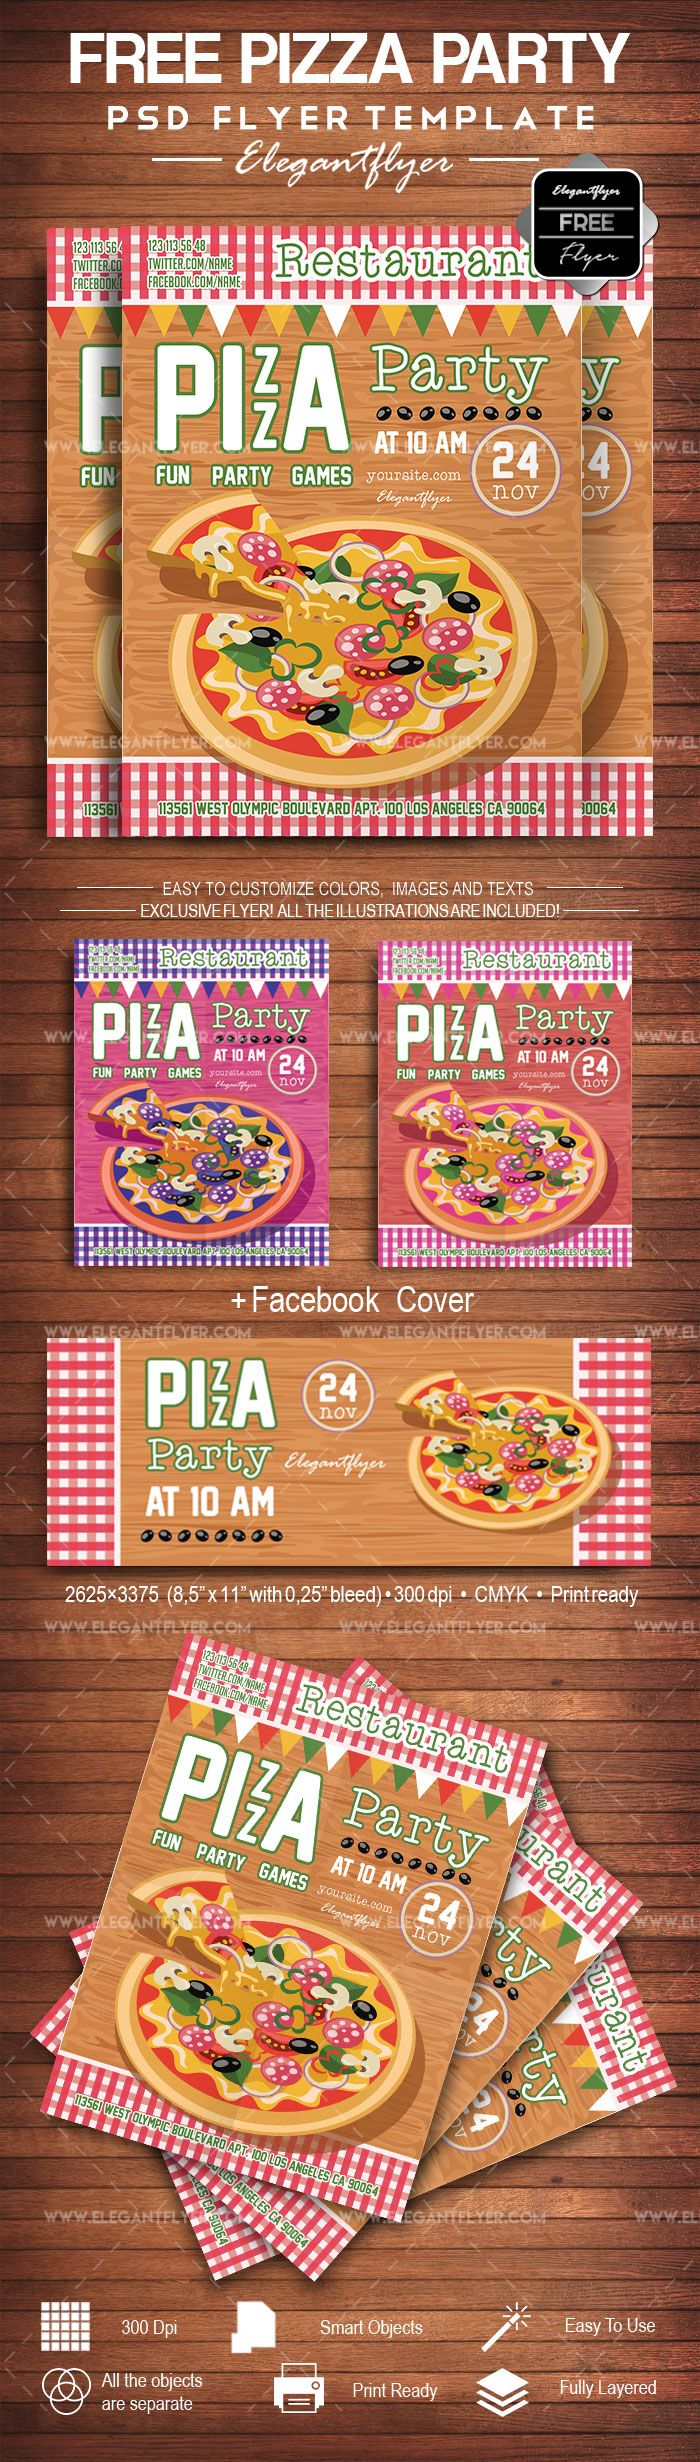 Pizza Party- Free Flyer PSD Template